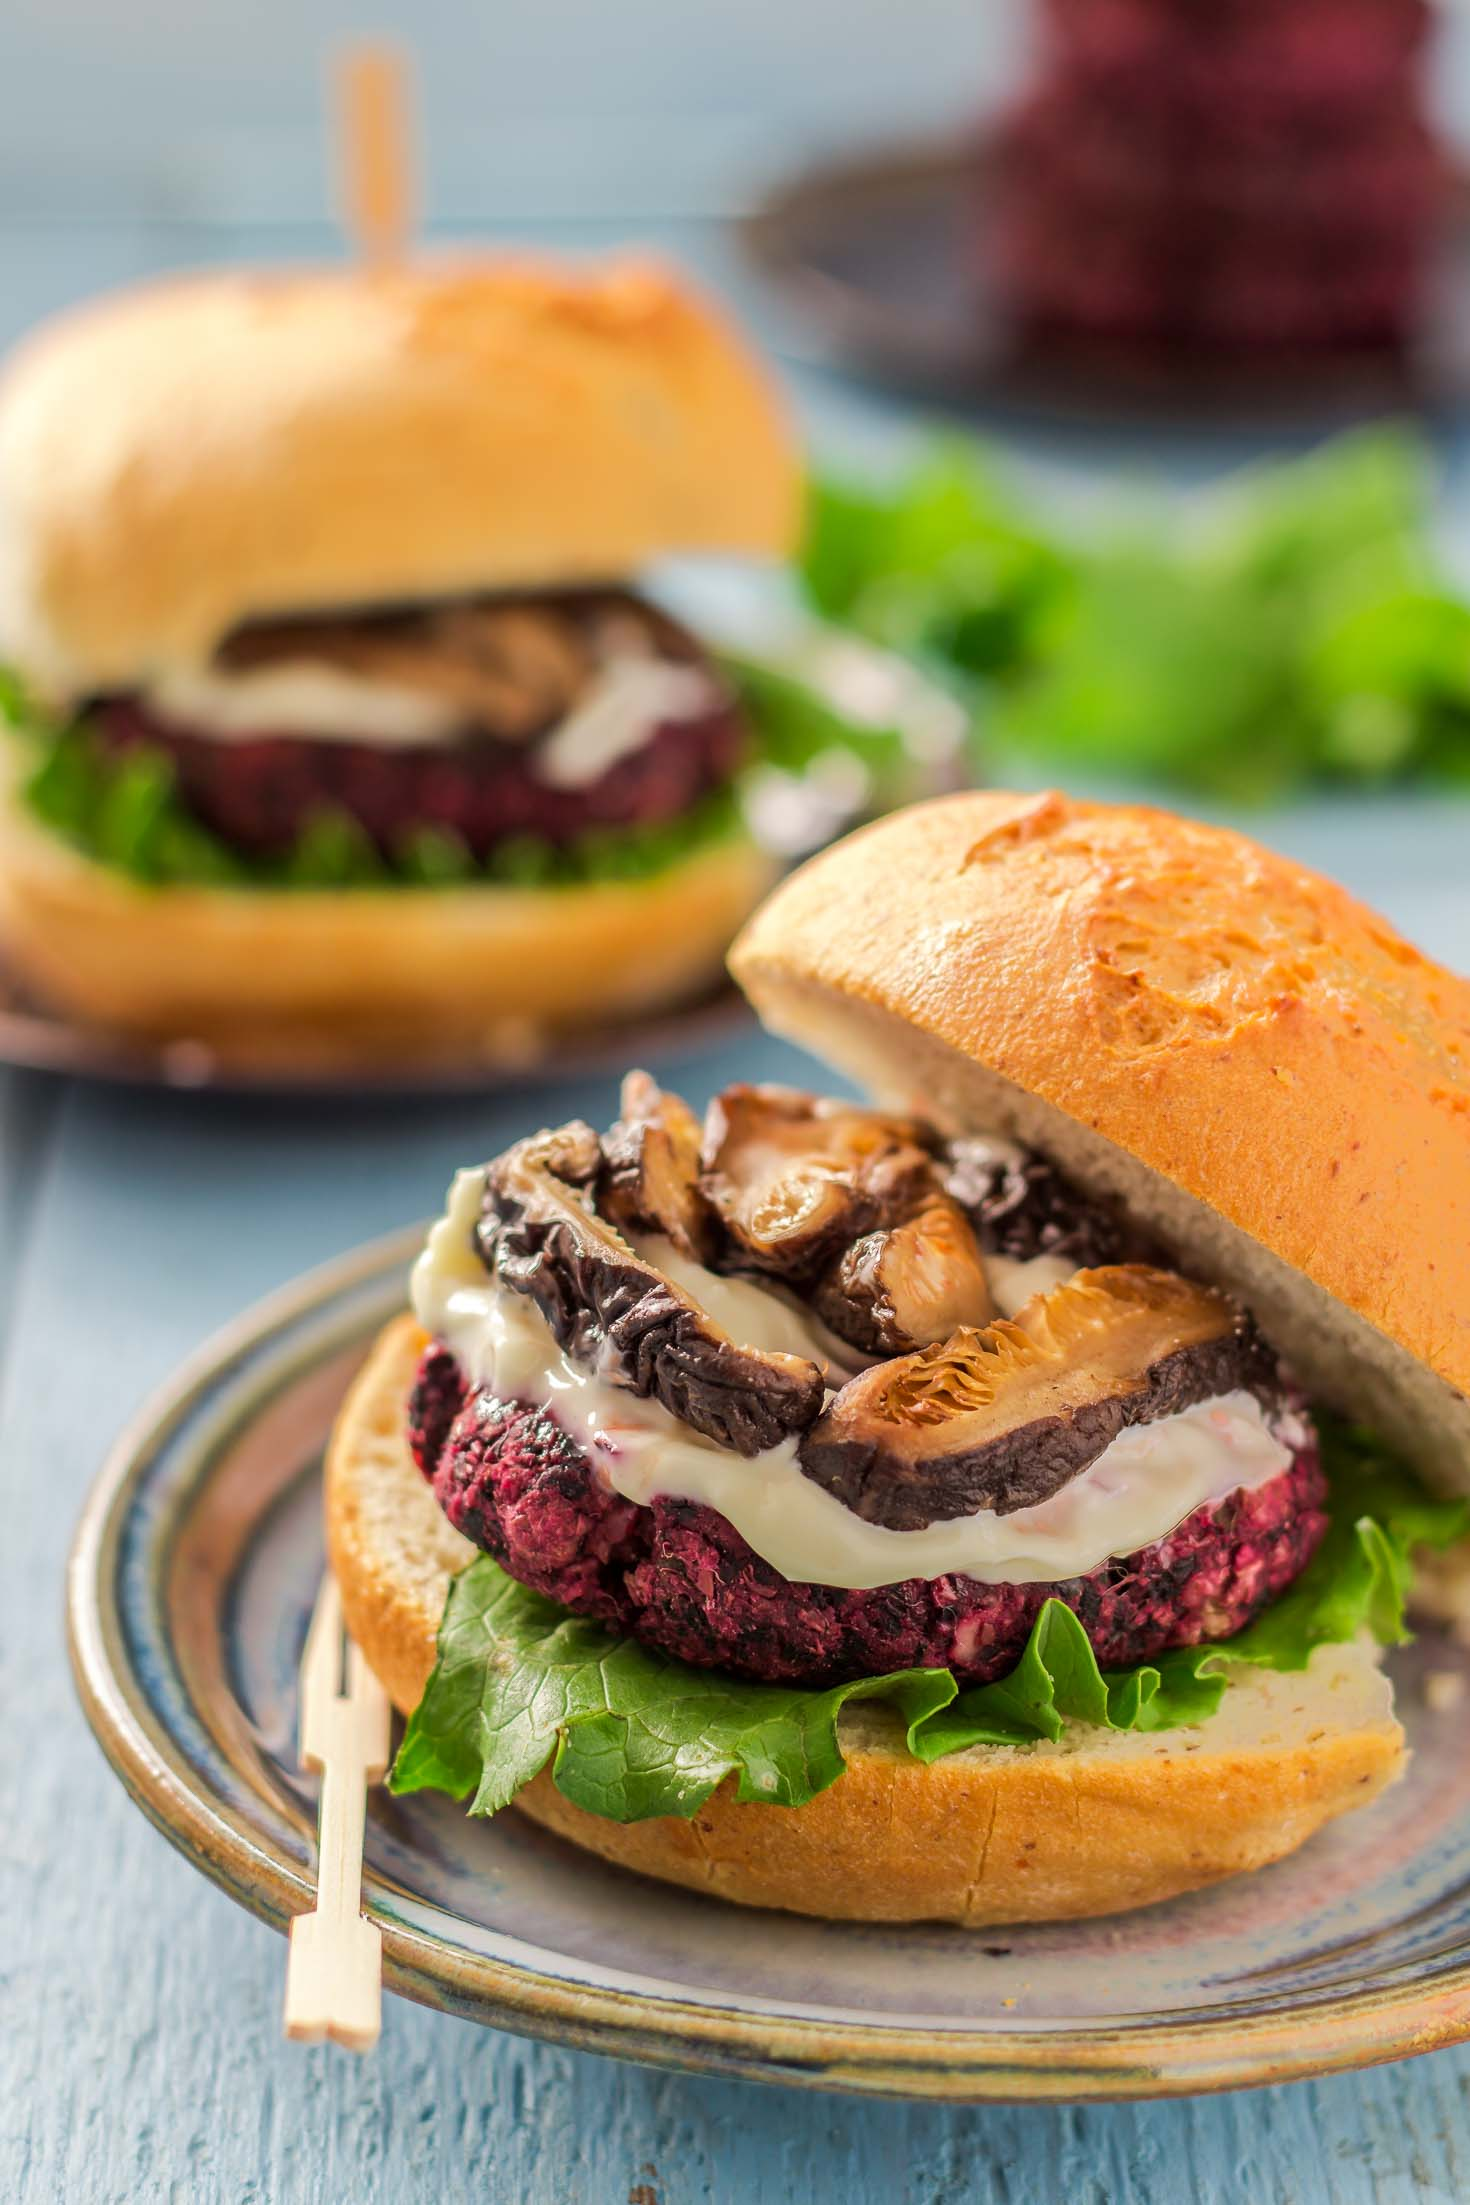 Beet Greens Lentil Burgers-top view-assembled with green leaf lettuce, mayonnaise, soy sauce braised shiitake mushrooms between gluten-free buns